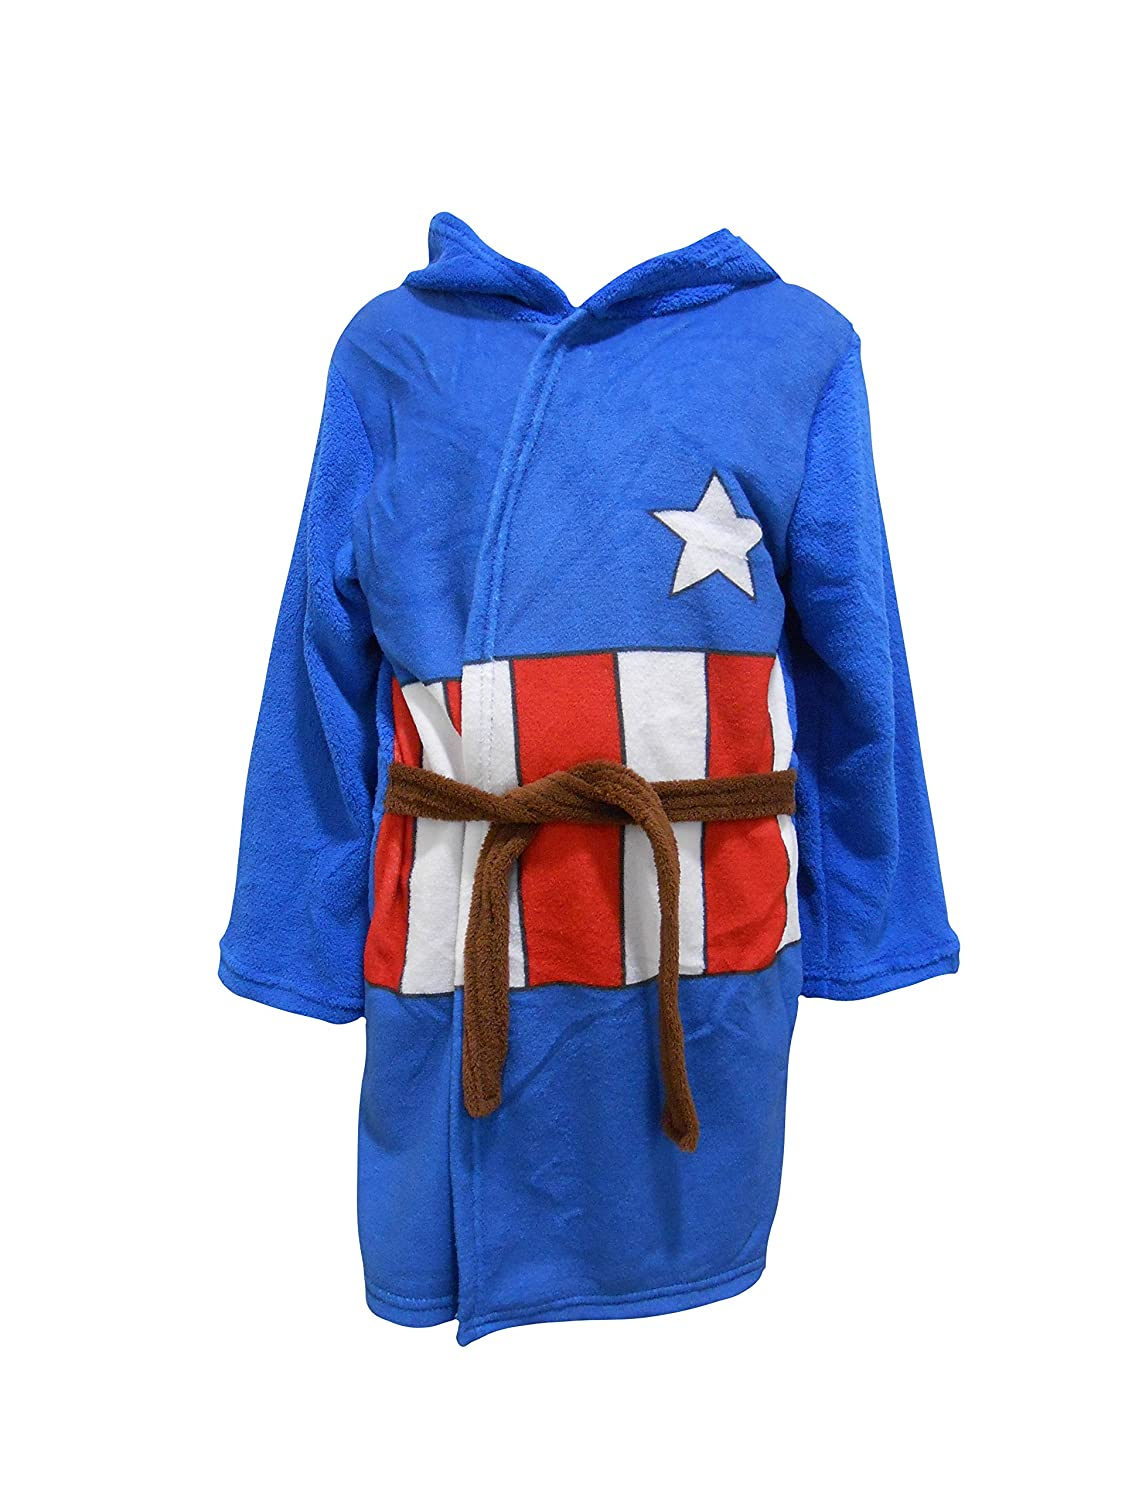 Captain America Kids Hooded Fleece Bathrobe Dressing Gown The Cookie Company